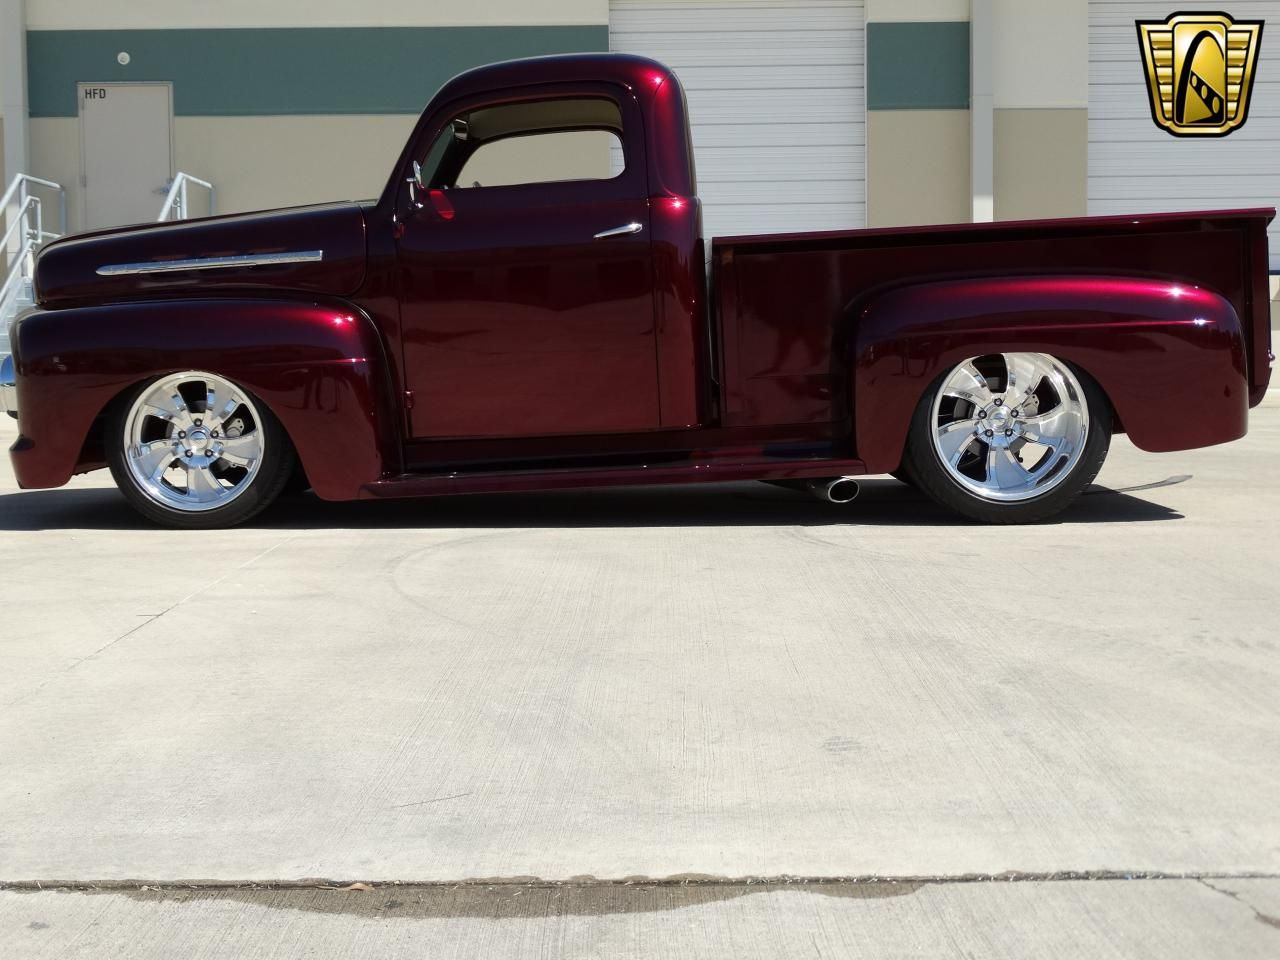 For sale in our Houston, Texas showroom is a Candy Brandywine Truck ...